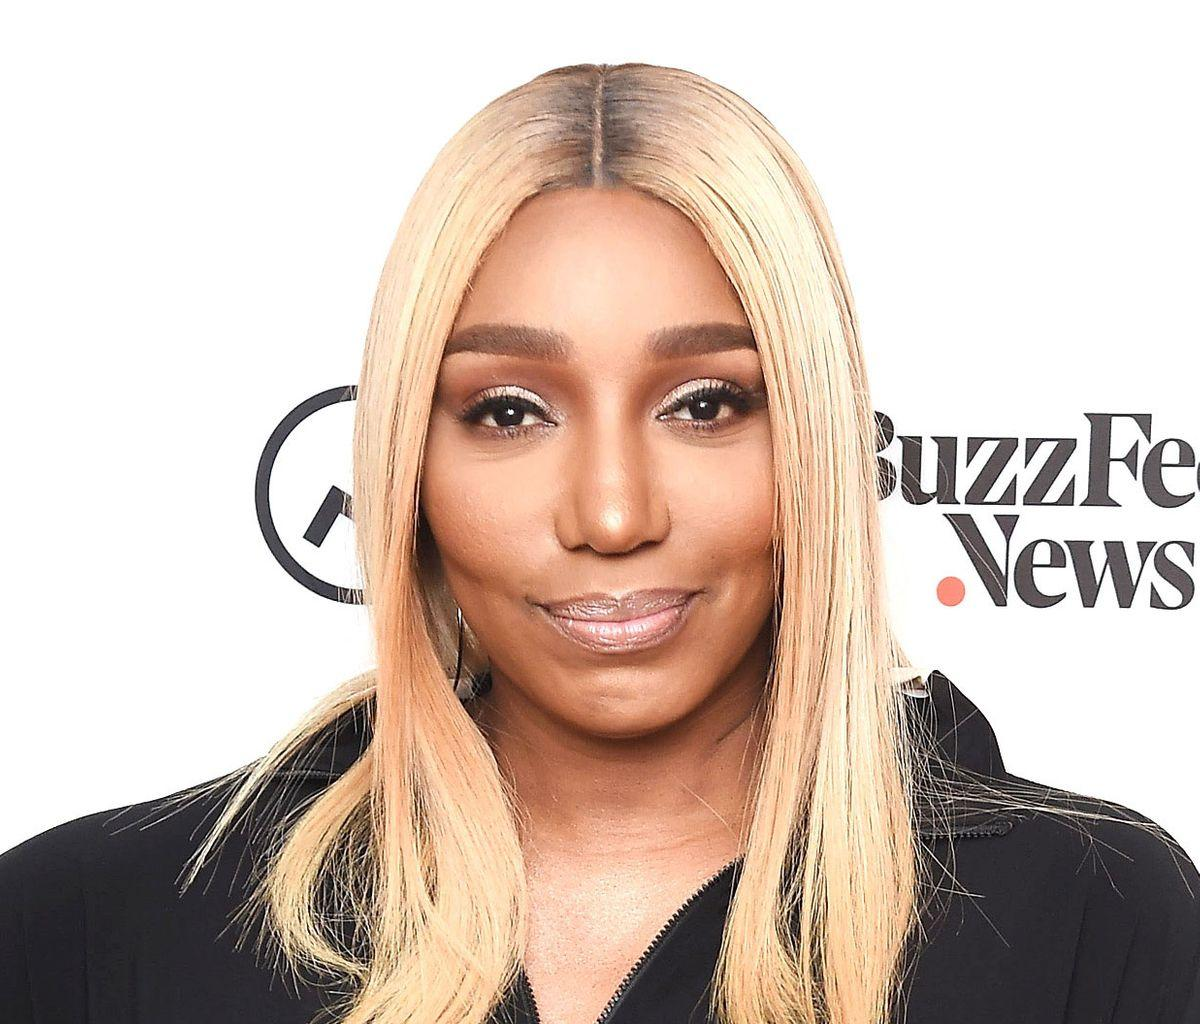 NeNe Leakes' Latest Video Has Fans Gushing Over Her In The Comments